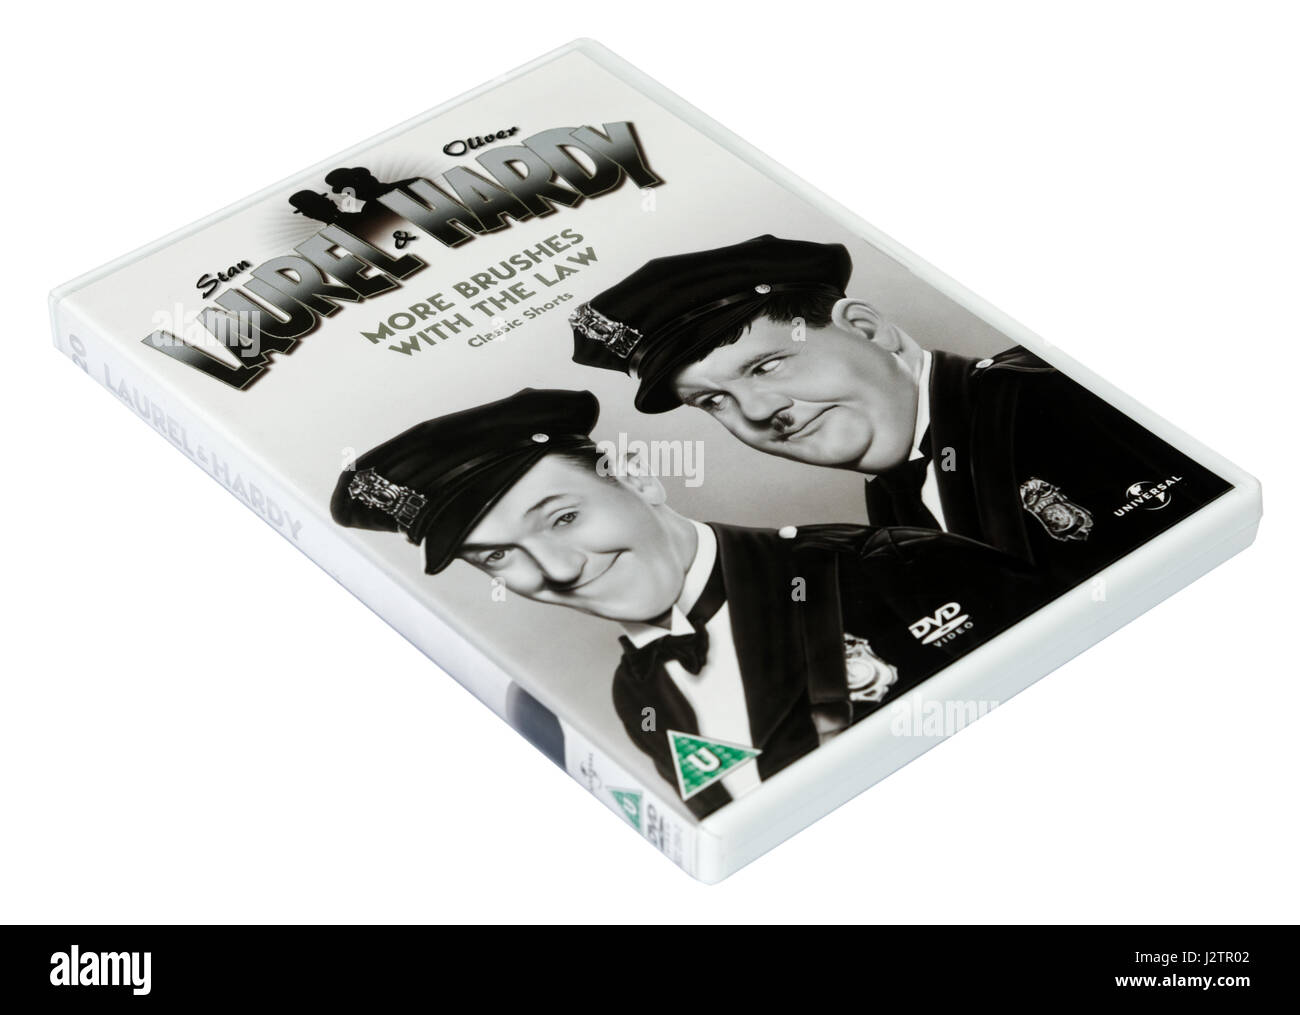 More Brushes With the Law: A Laurel and Hardy DVD of short films - Stock Image